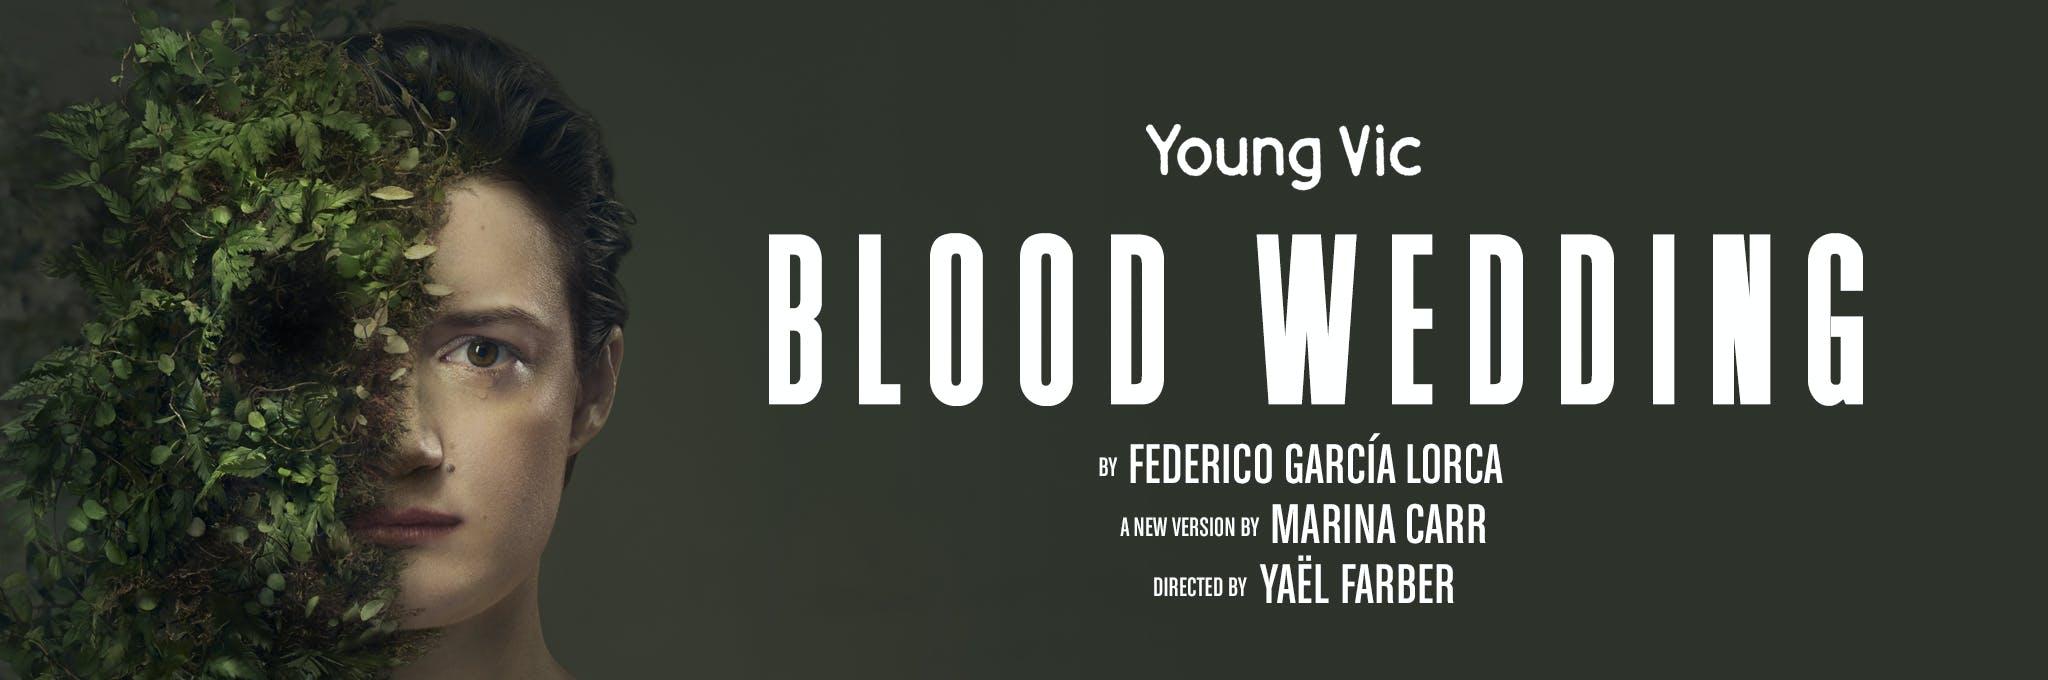 Young Vic - £5 First Preview Blood Wedding Logo